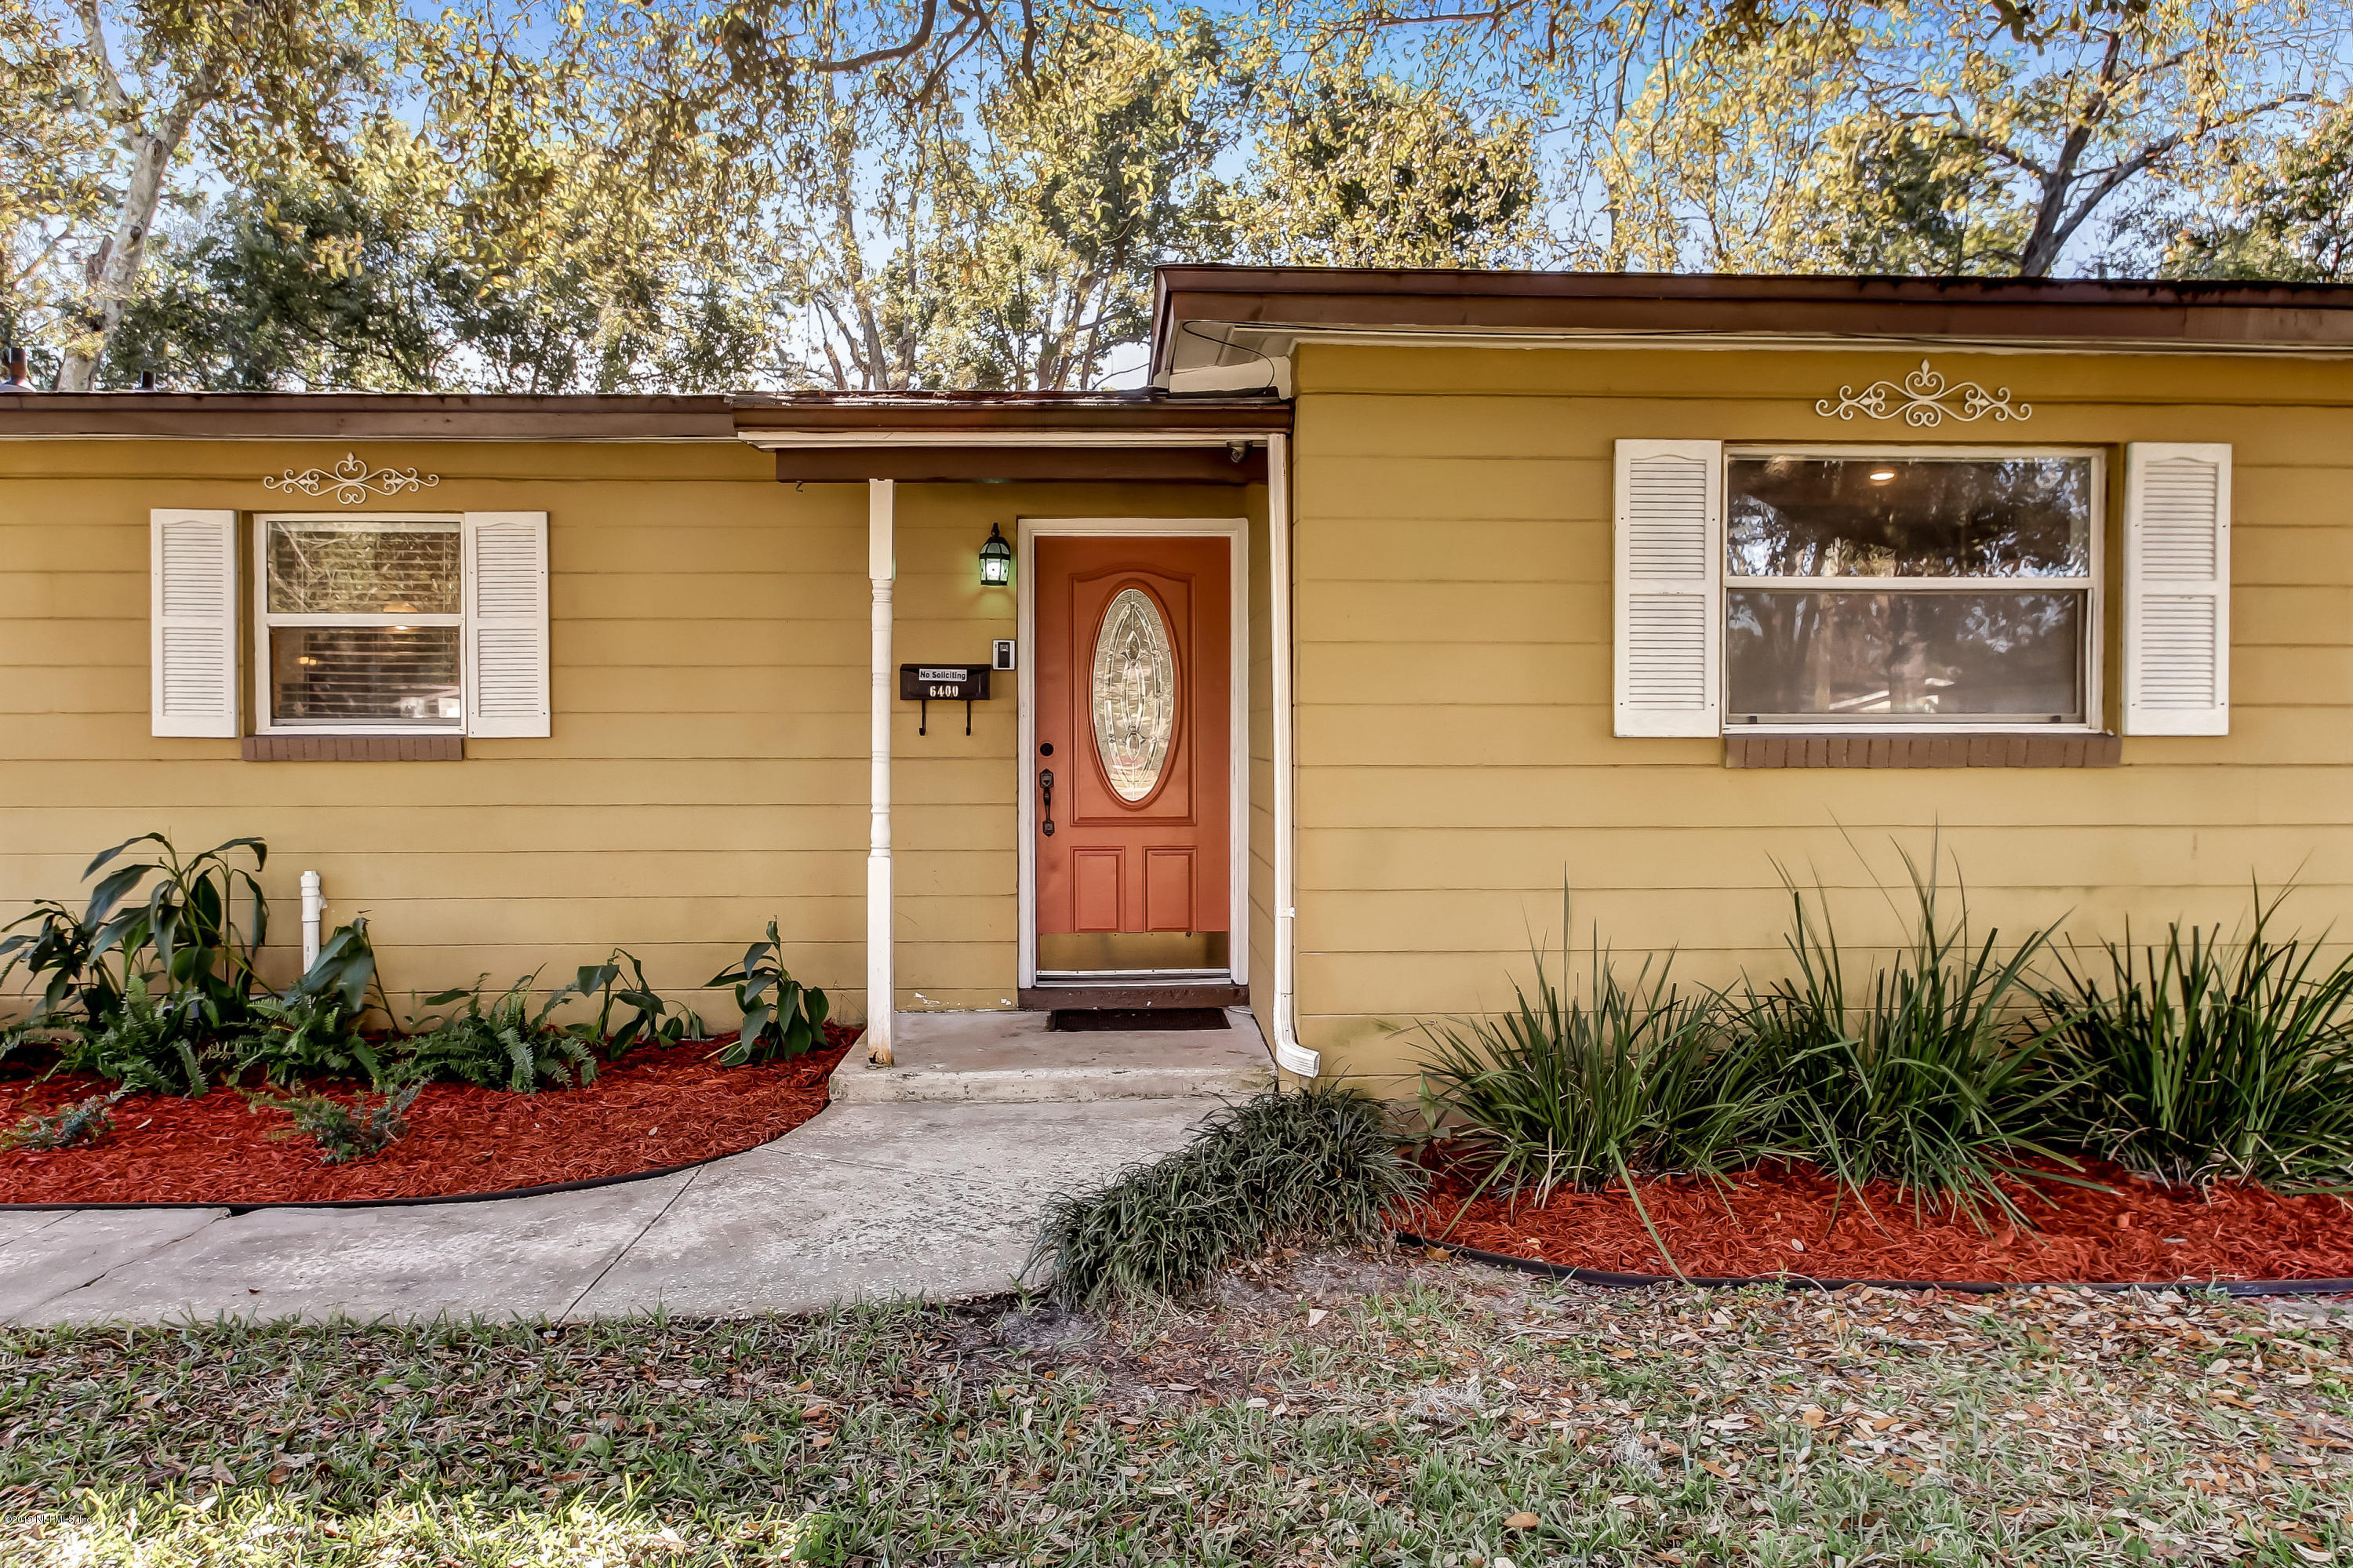 6400 DIANE, JACKSONVILLE, FLORIDA 32277, 4 Bedrooms Bedrooms, ,2 BathroomsBathrooms,Residential - single family,For sale,DIANE,974110